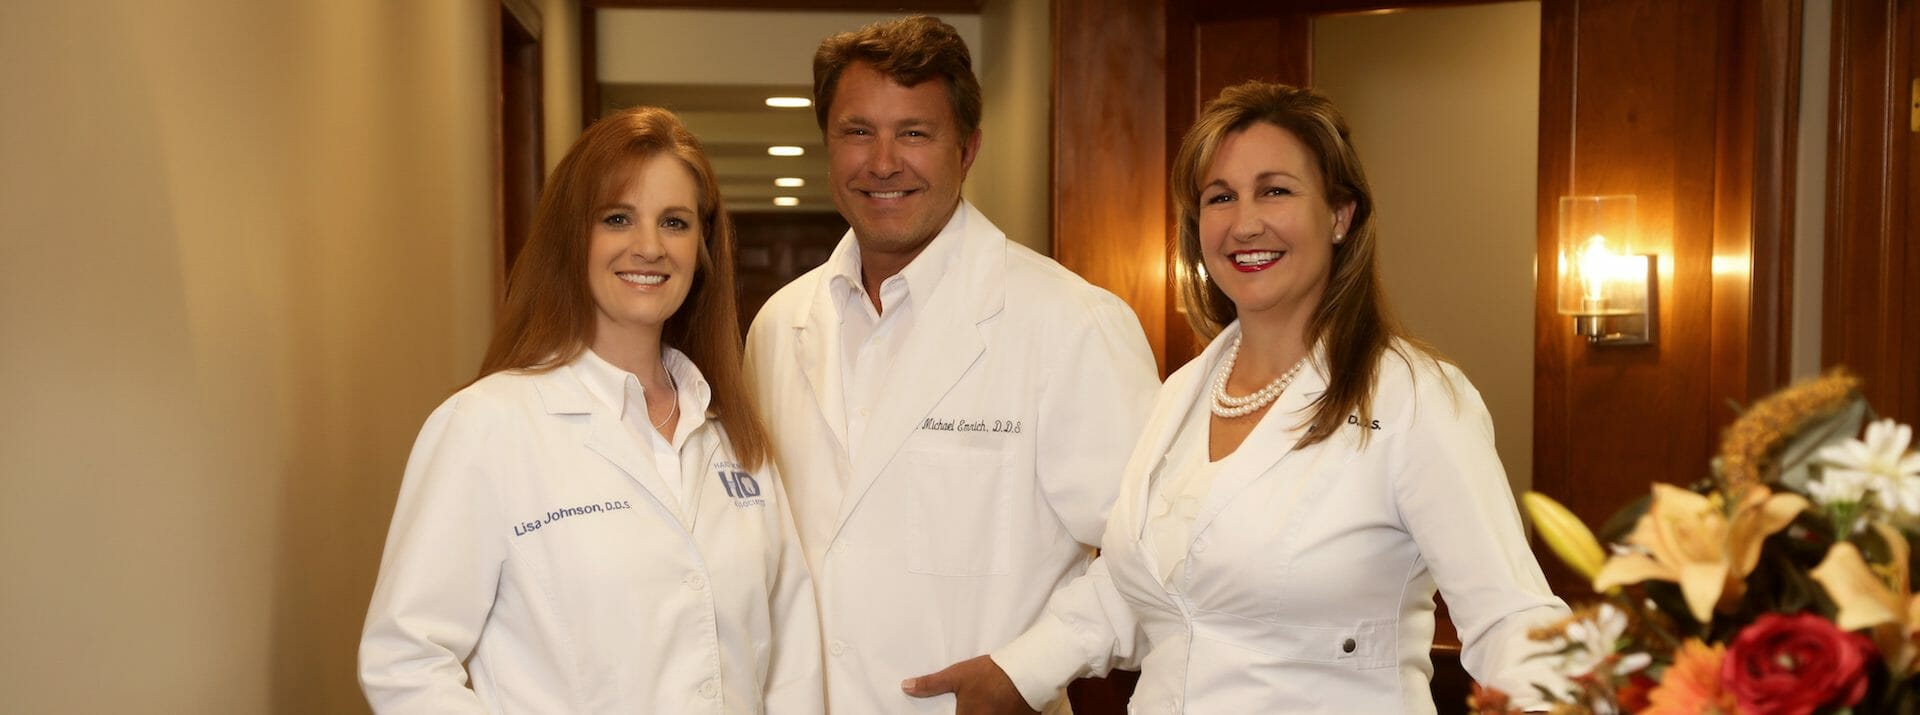 three dentists